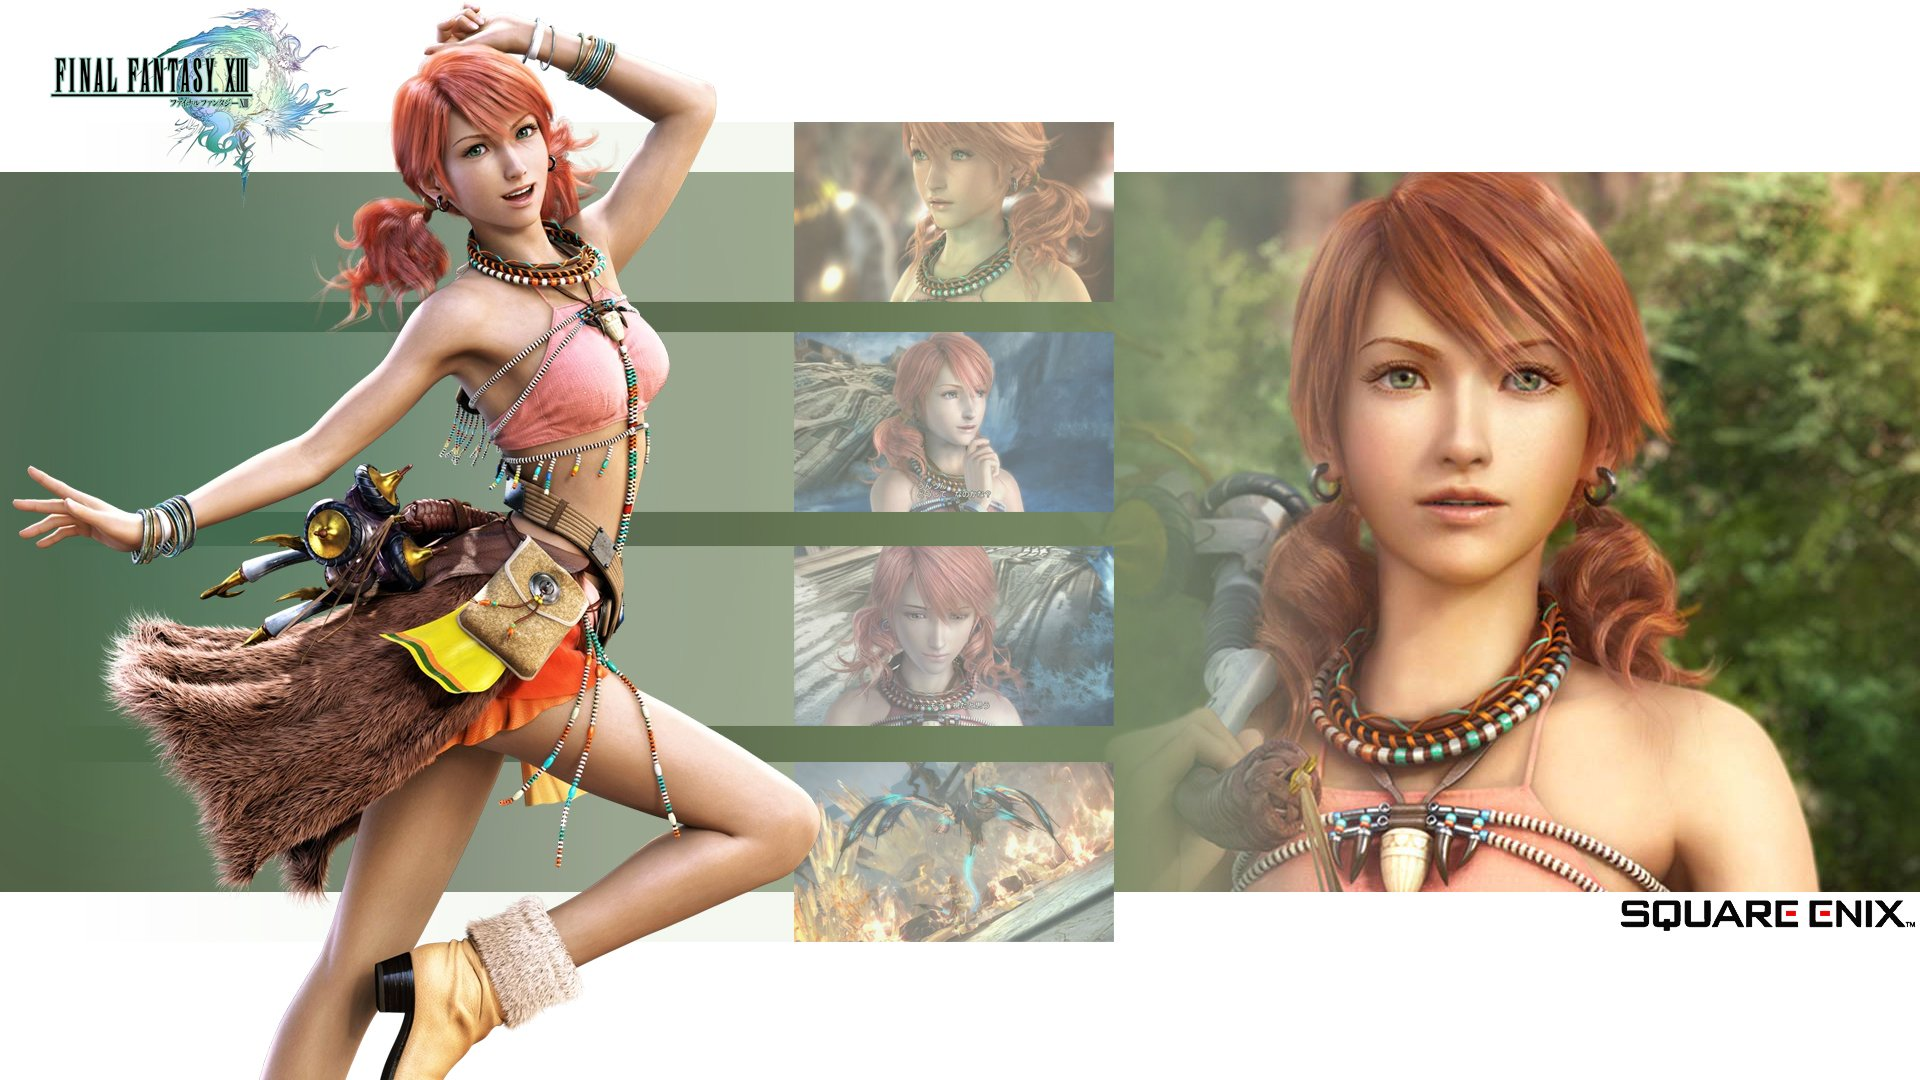 Video Game - Final Fantasy XIII  Wallpaper